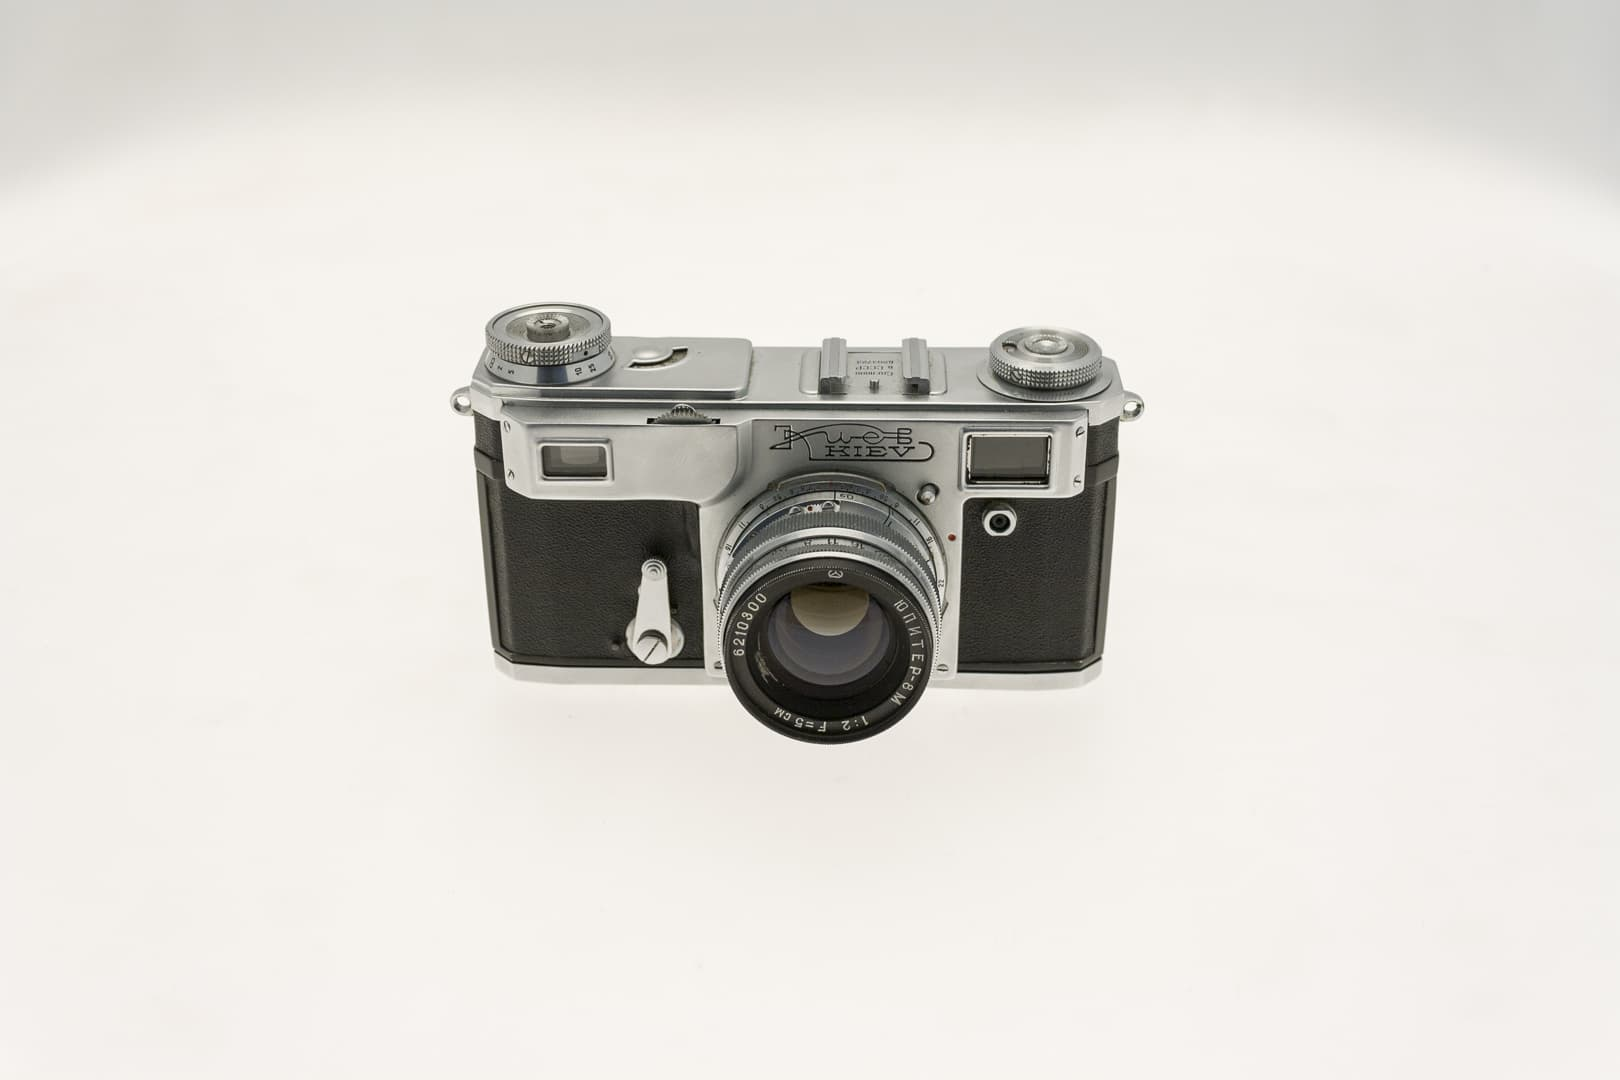 Kiev 4A (Киев) – Soviet 35mm Rangefinder Film Camera Front View